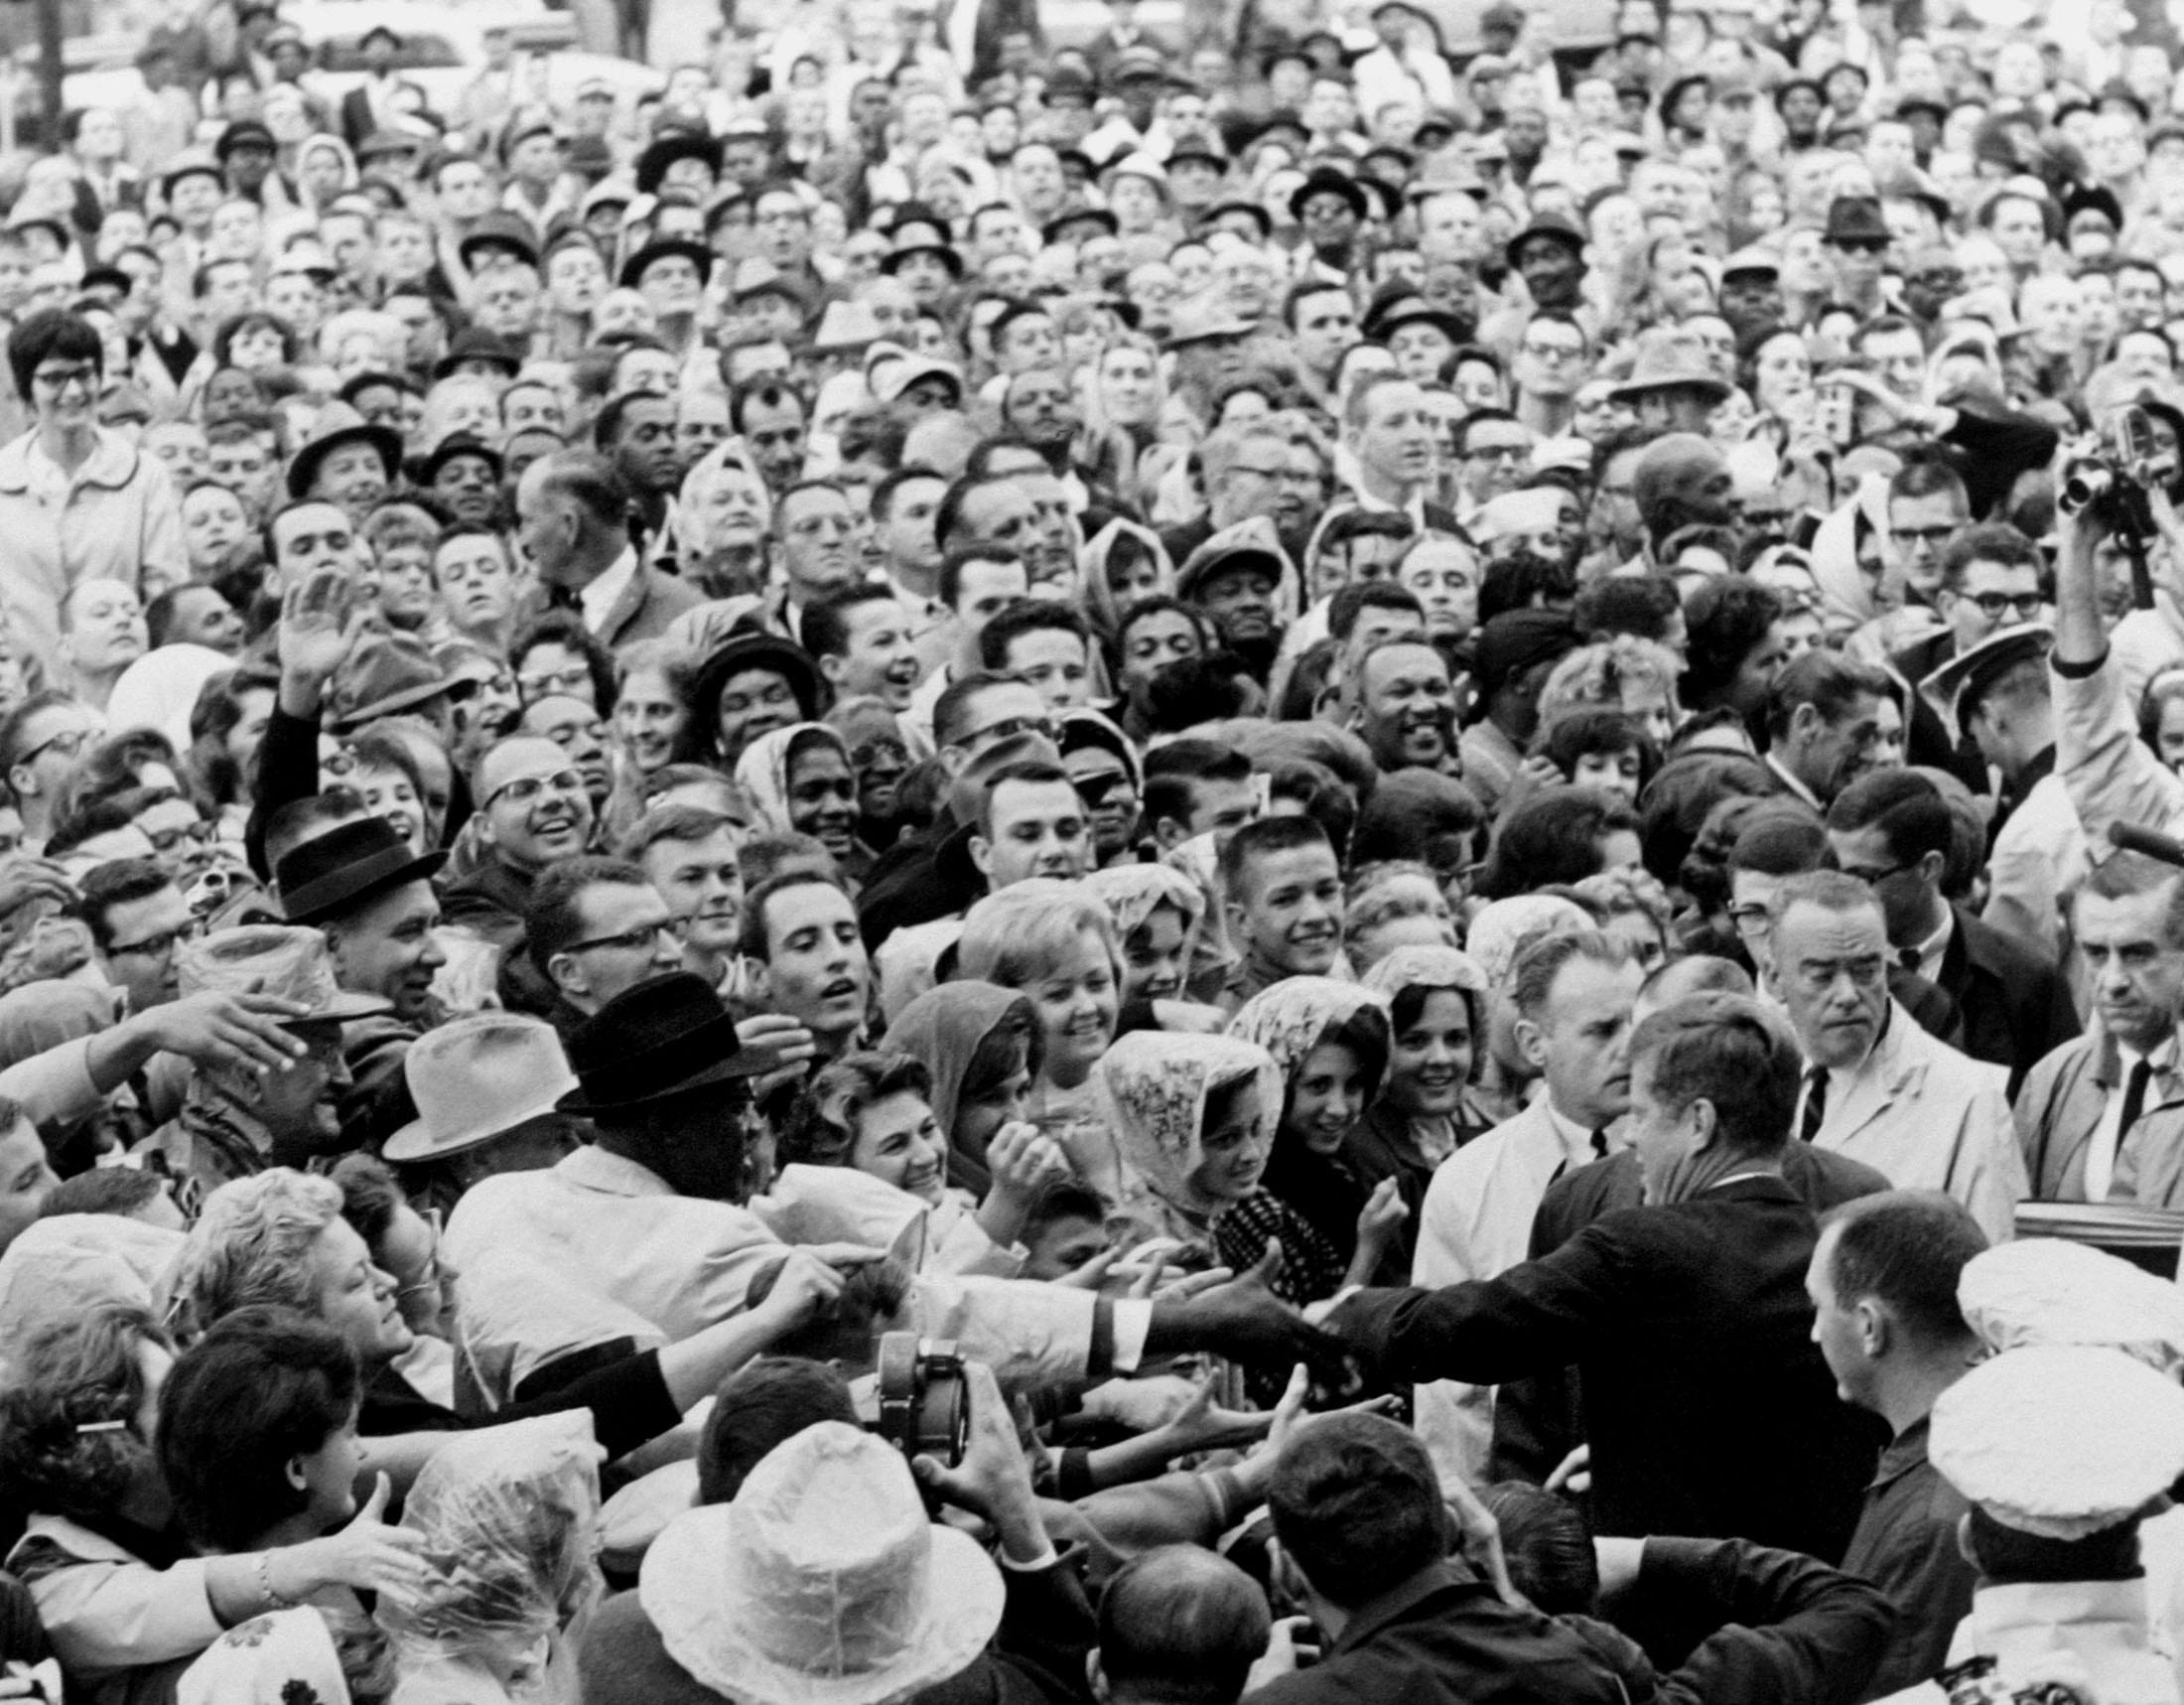 President Kennedy greets the crowd at rally in Fort Worth - November 22nd, 1963